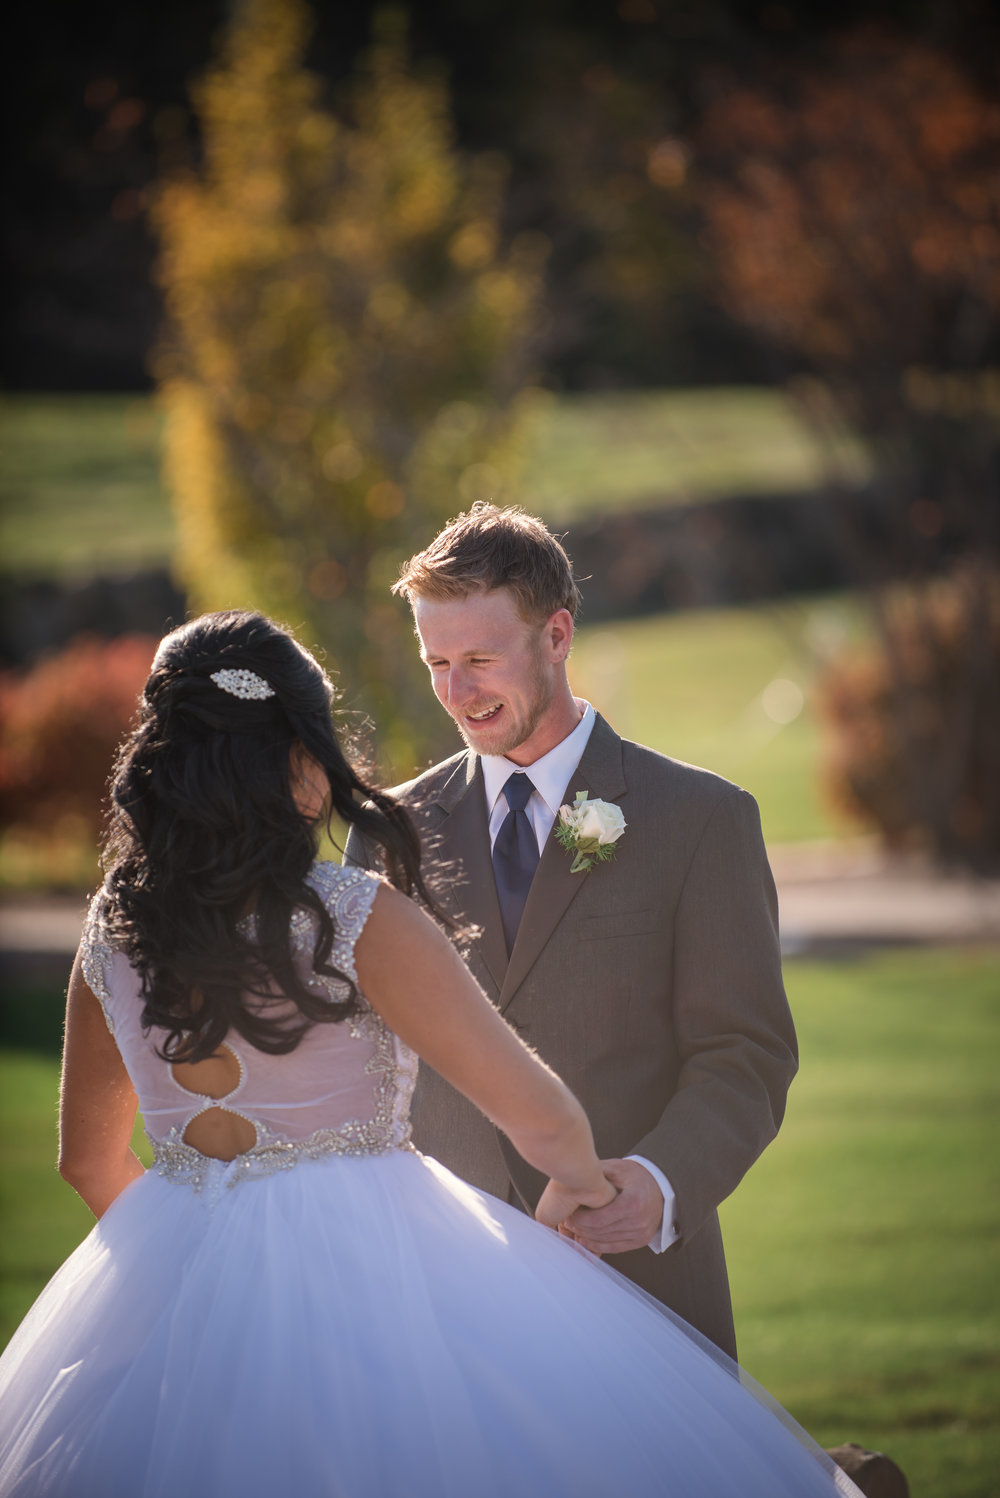 Lindsey&eanWedding (14 of 25).JPG